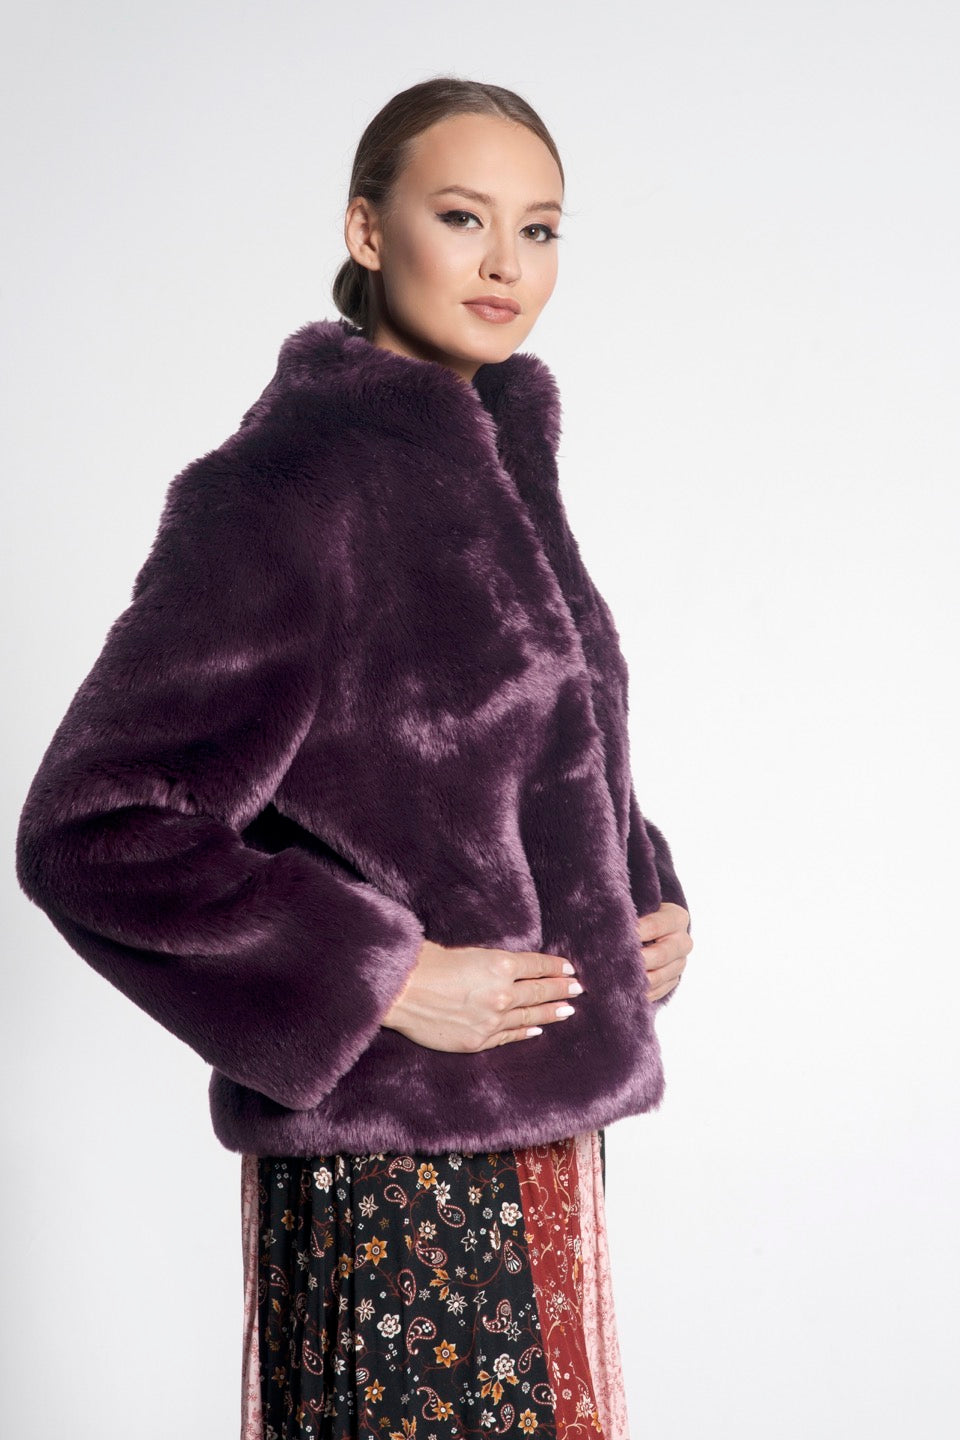 Violette Mid Length Faux Fur Jacket